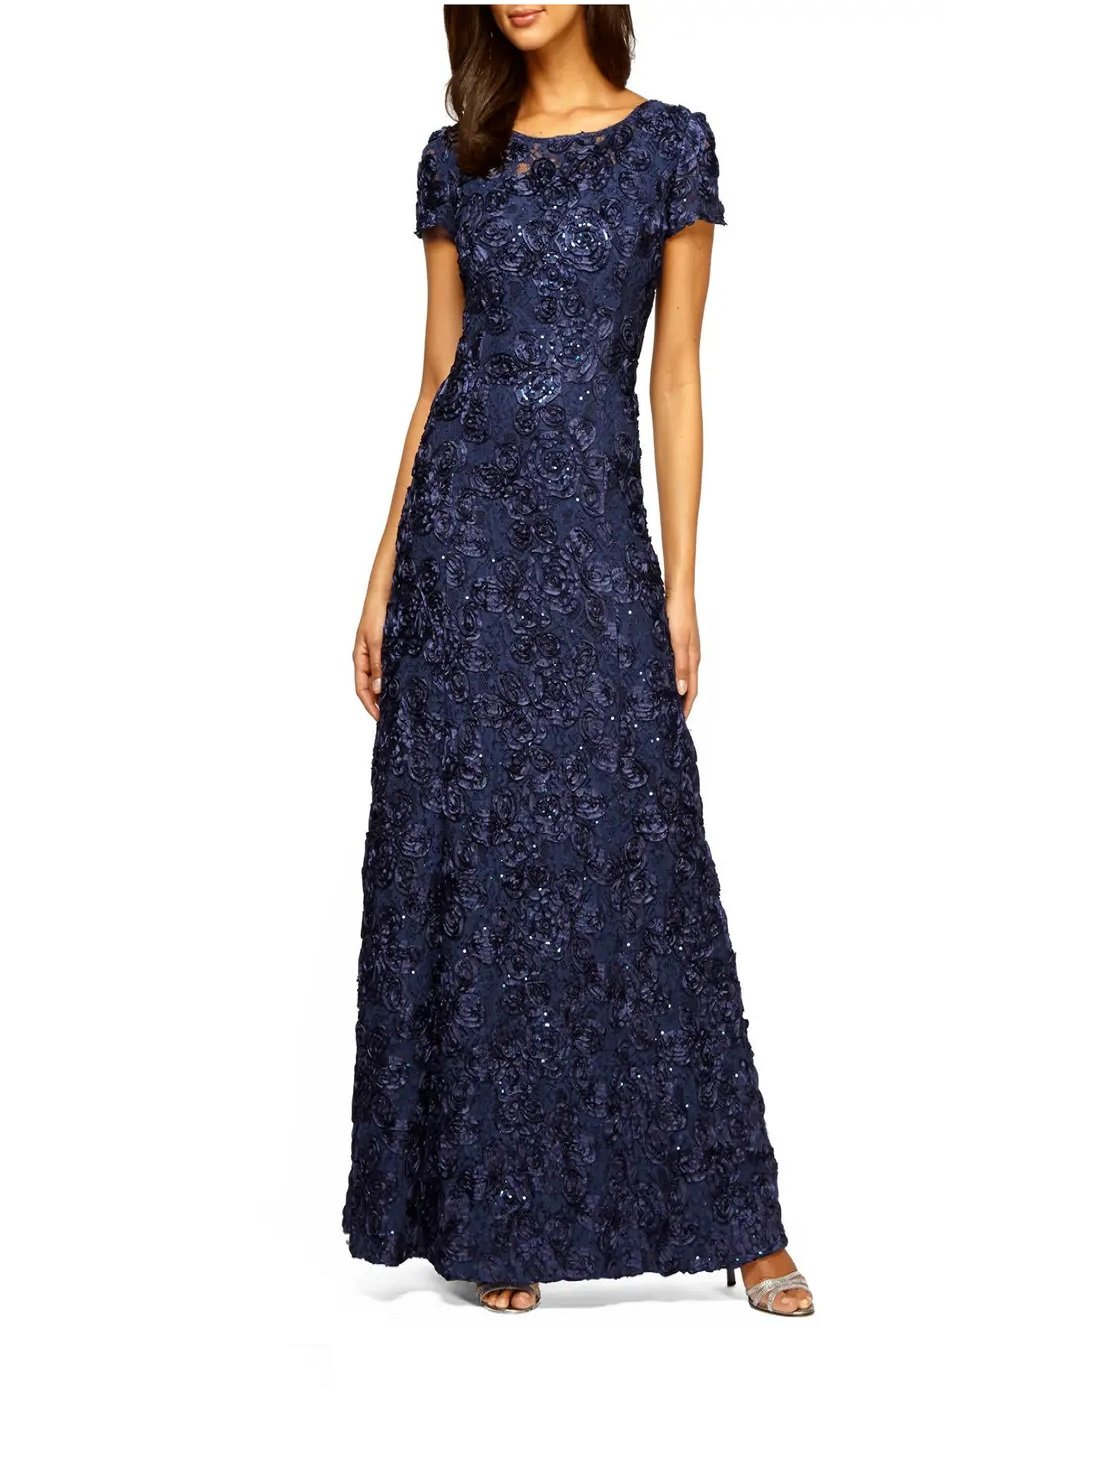 Embellished Lace A-Line Gown